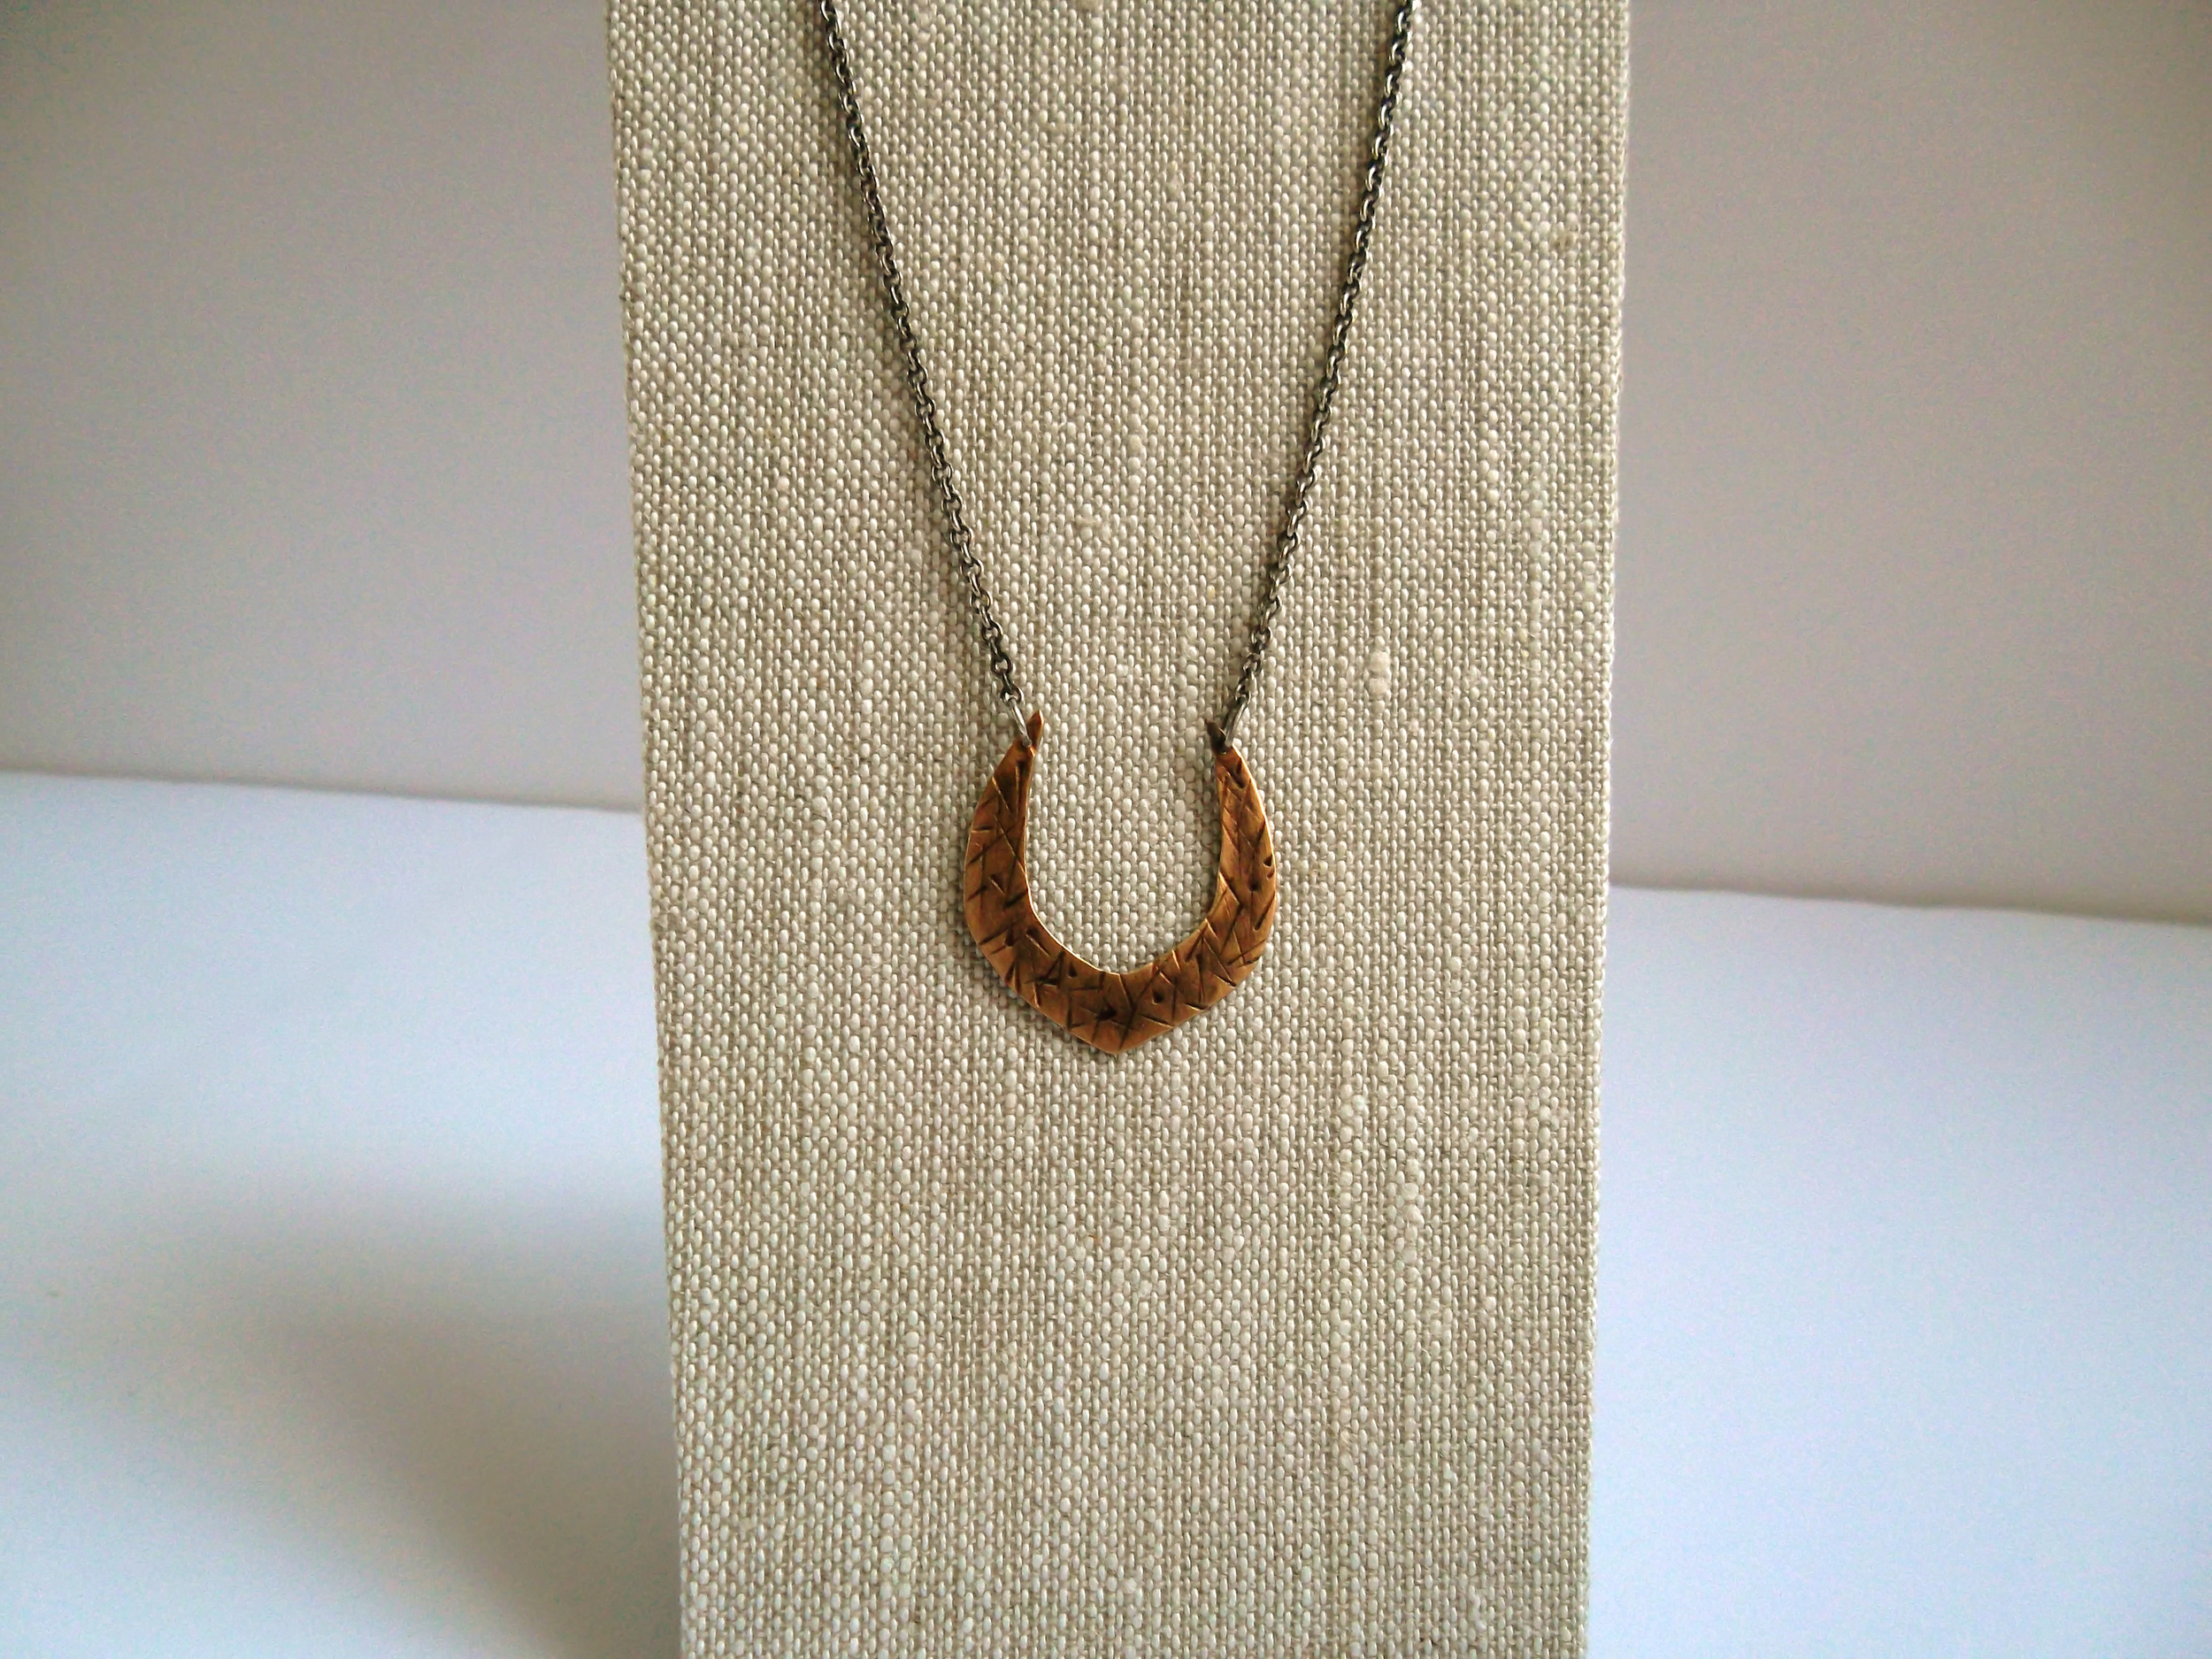 Blackened bronze and sterling silver horseshoe necklace